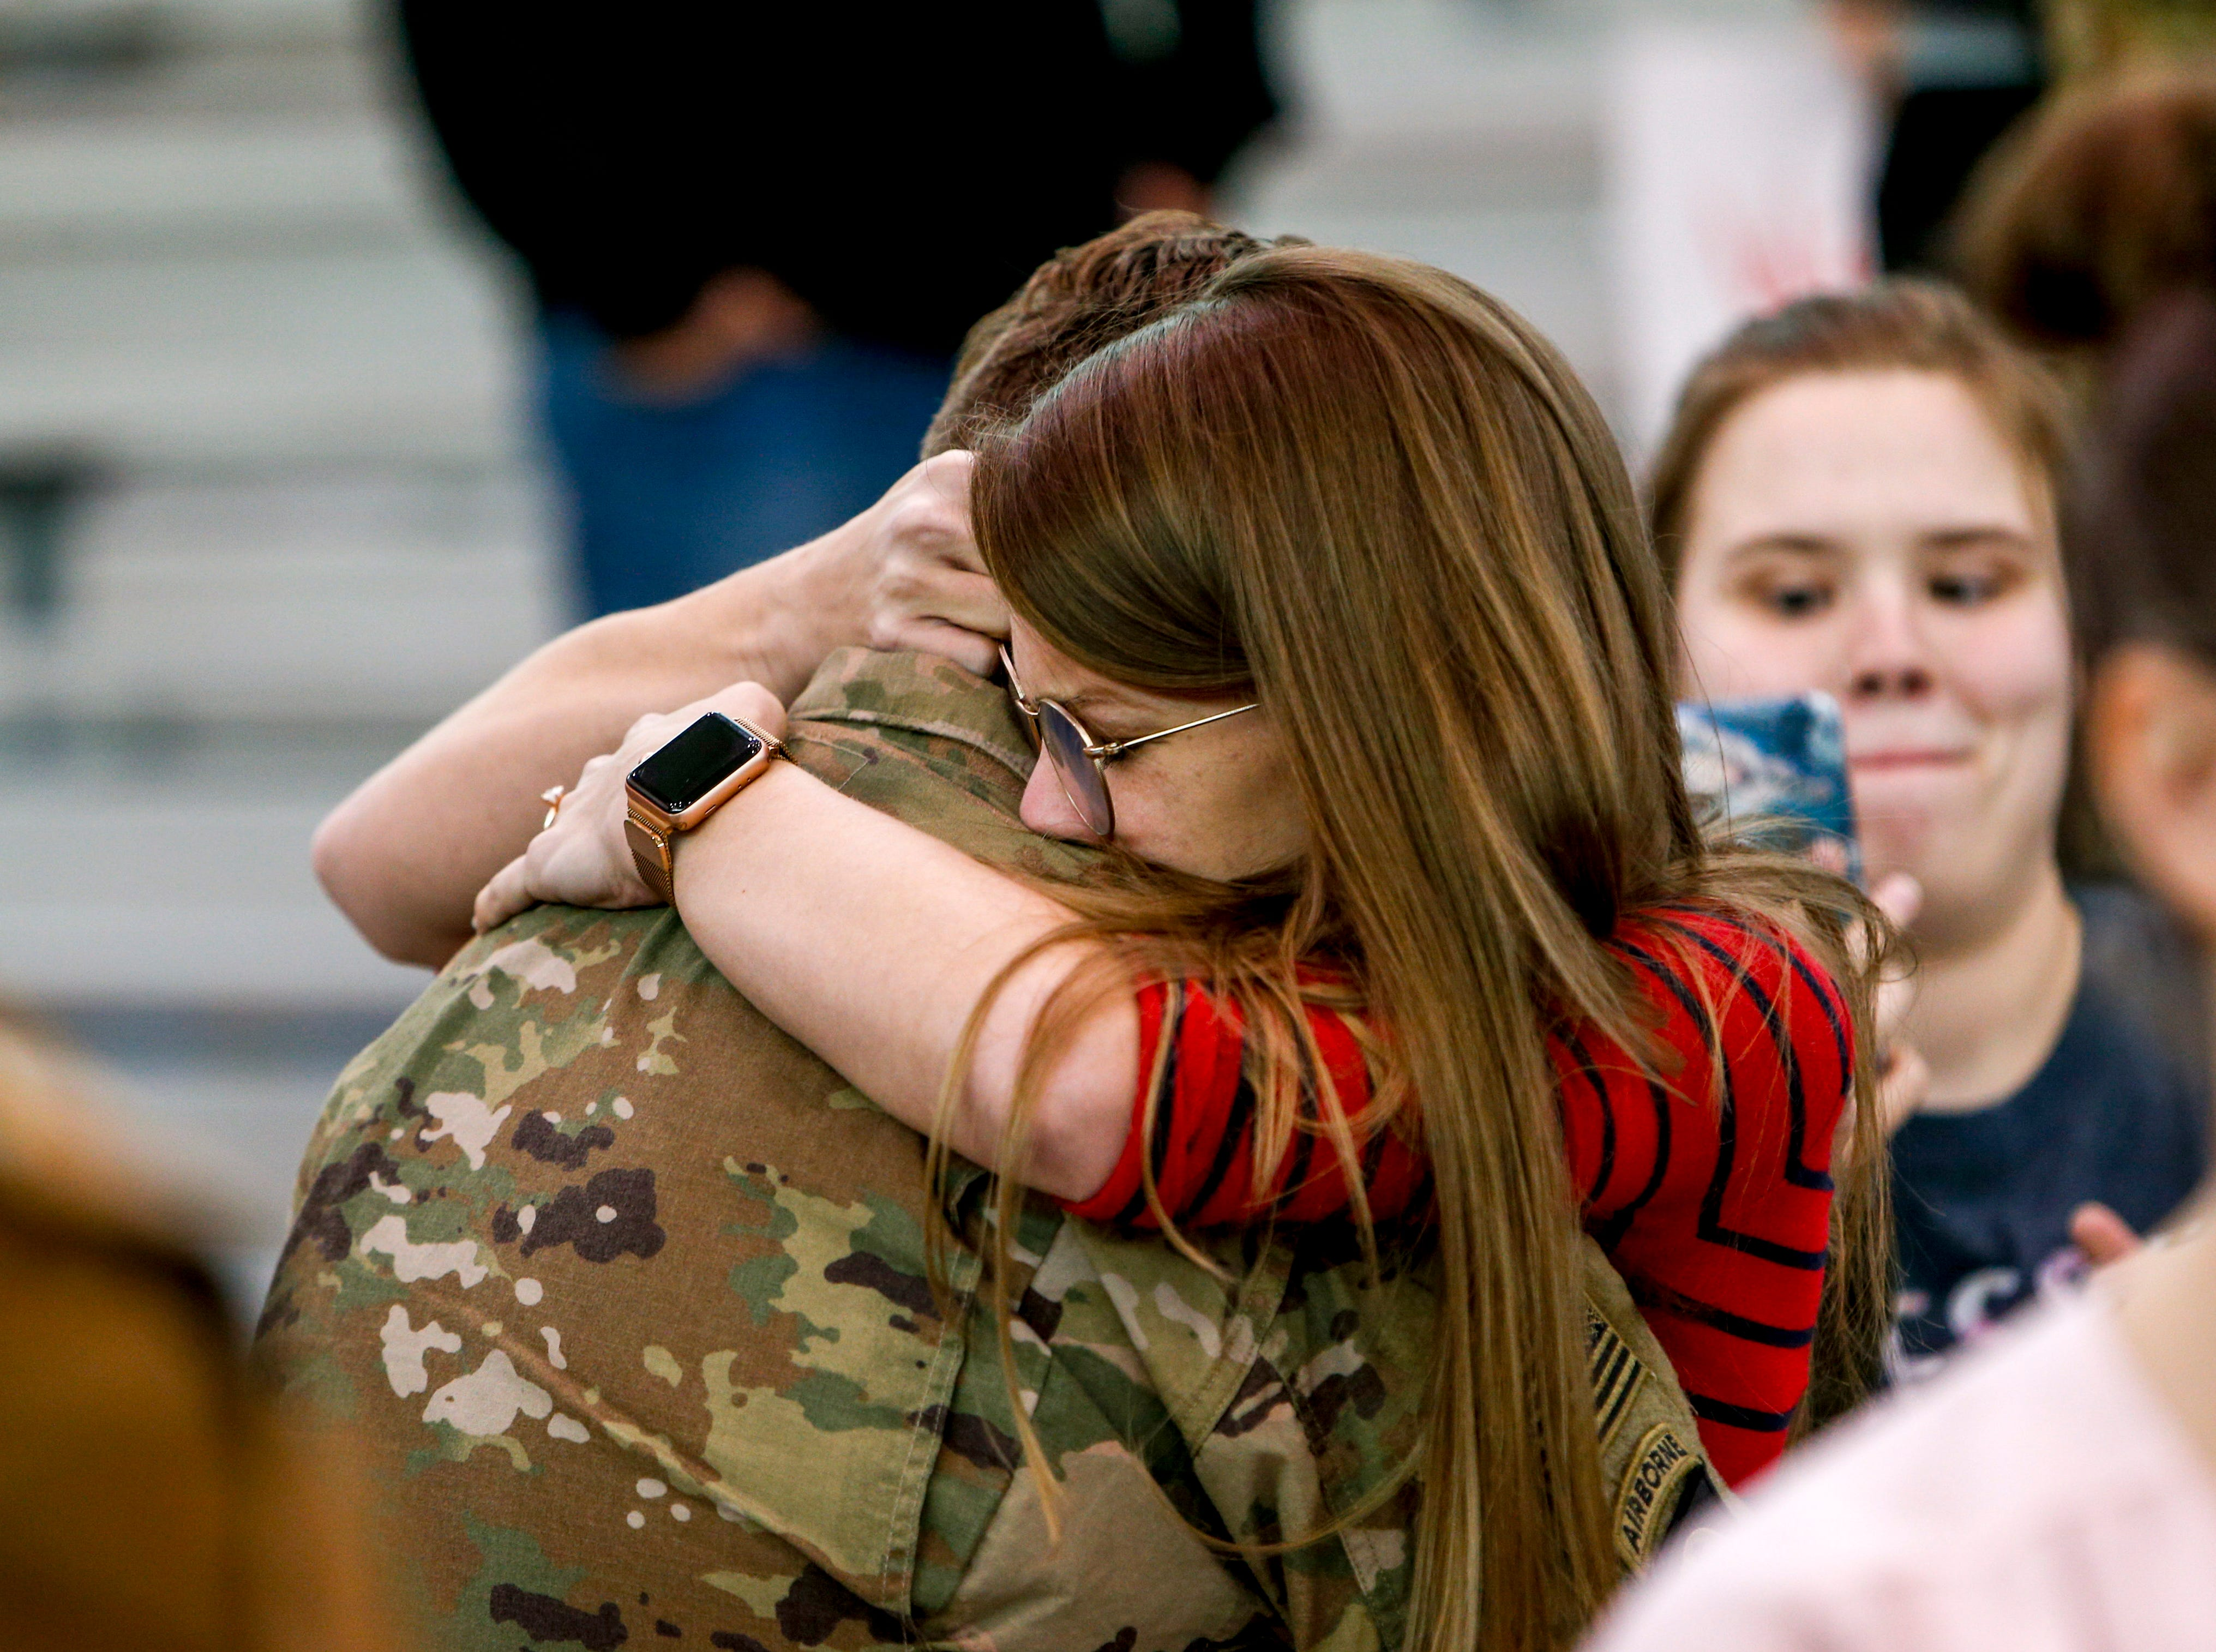 Loved ones welcome troops coming home from deployment in Afghanistan during the return of soldiers from the 101st Combat Aviation Brigade of 101st Airborne Division (Air Assault) at Campbell Army Air Field in Fort Campbell, KY., on Sunday, March 10, 2019.